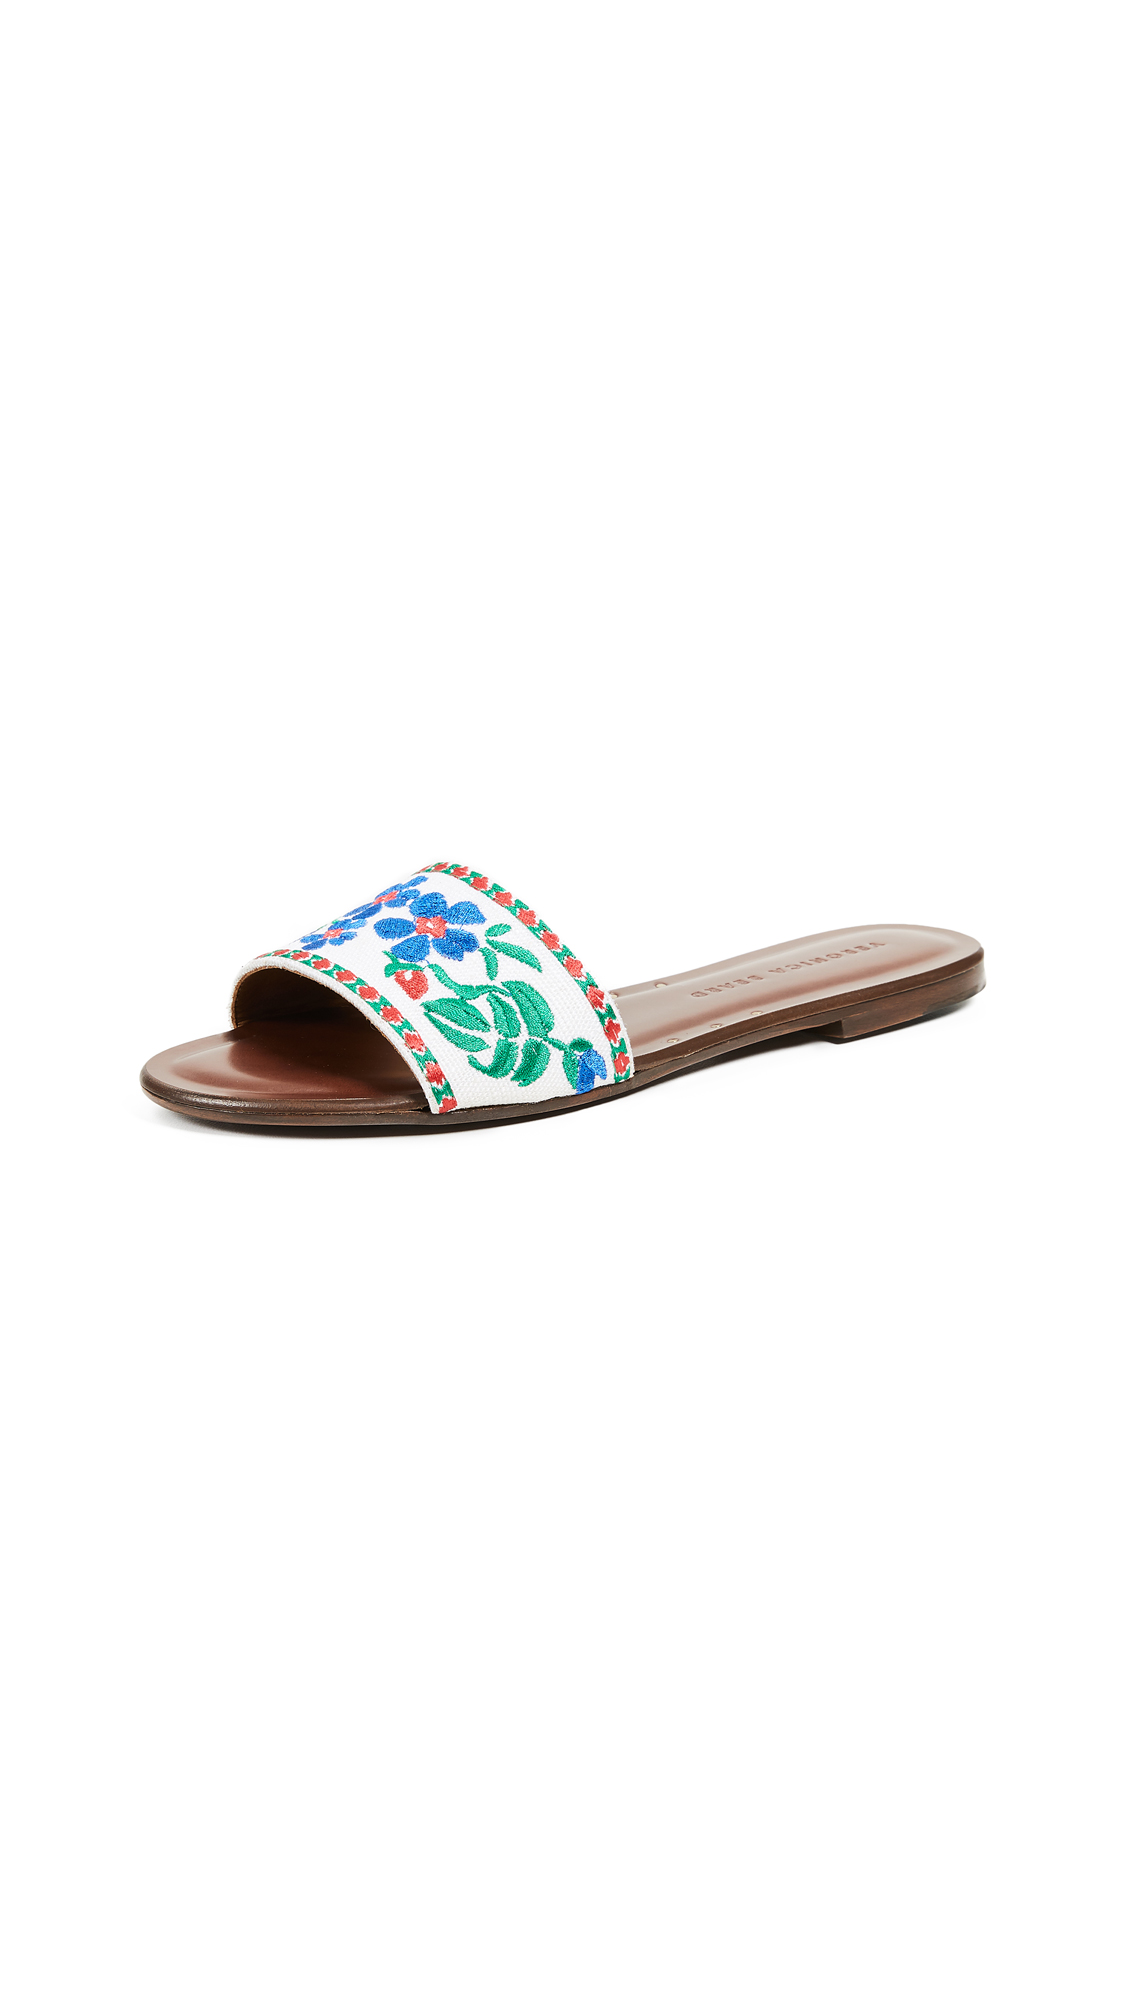 Veronica Beard Frida Linen Slide Sandals - White